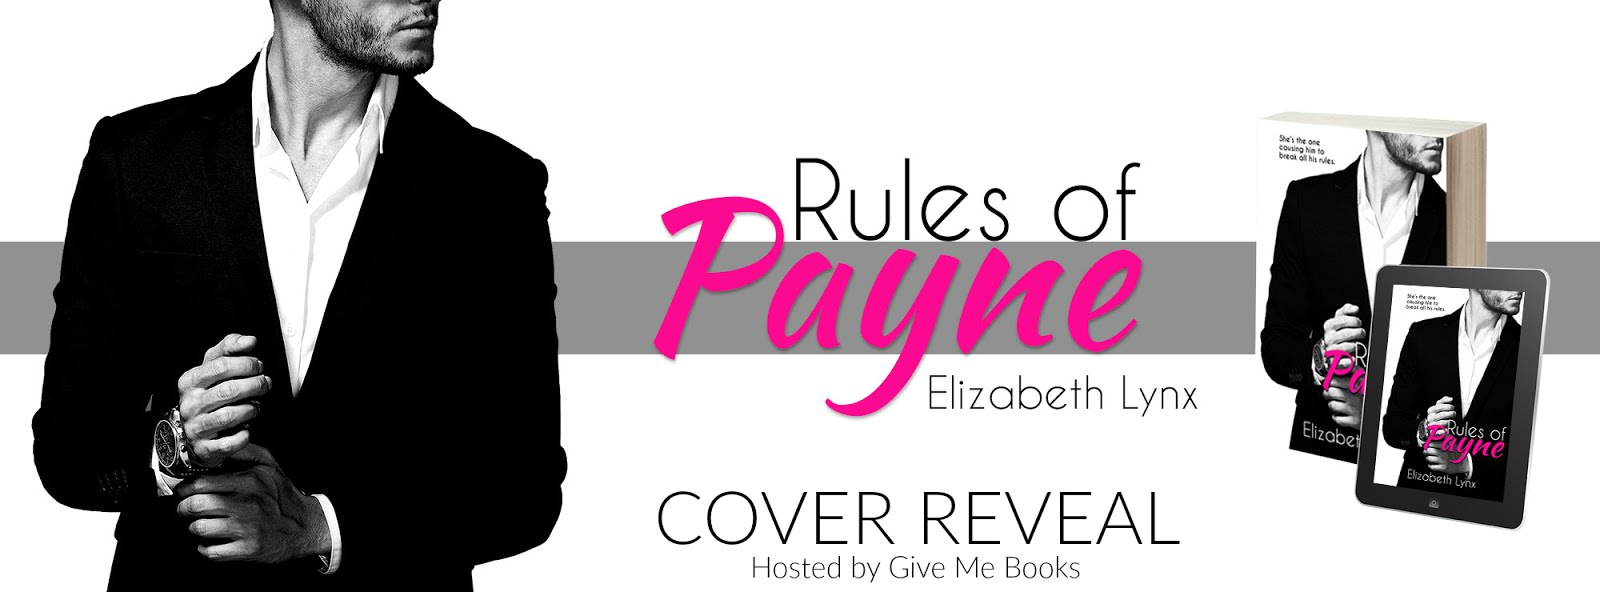 Rules of Payne Cover Reveal